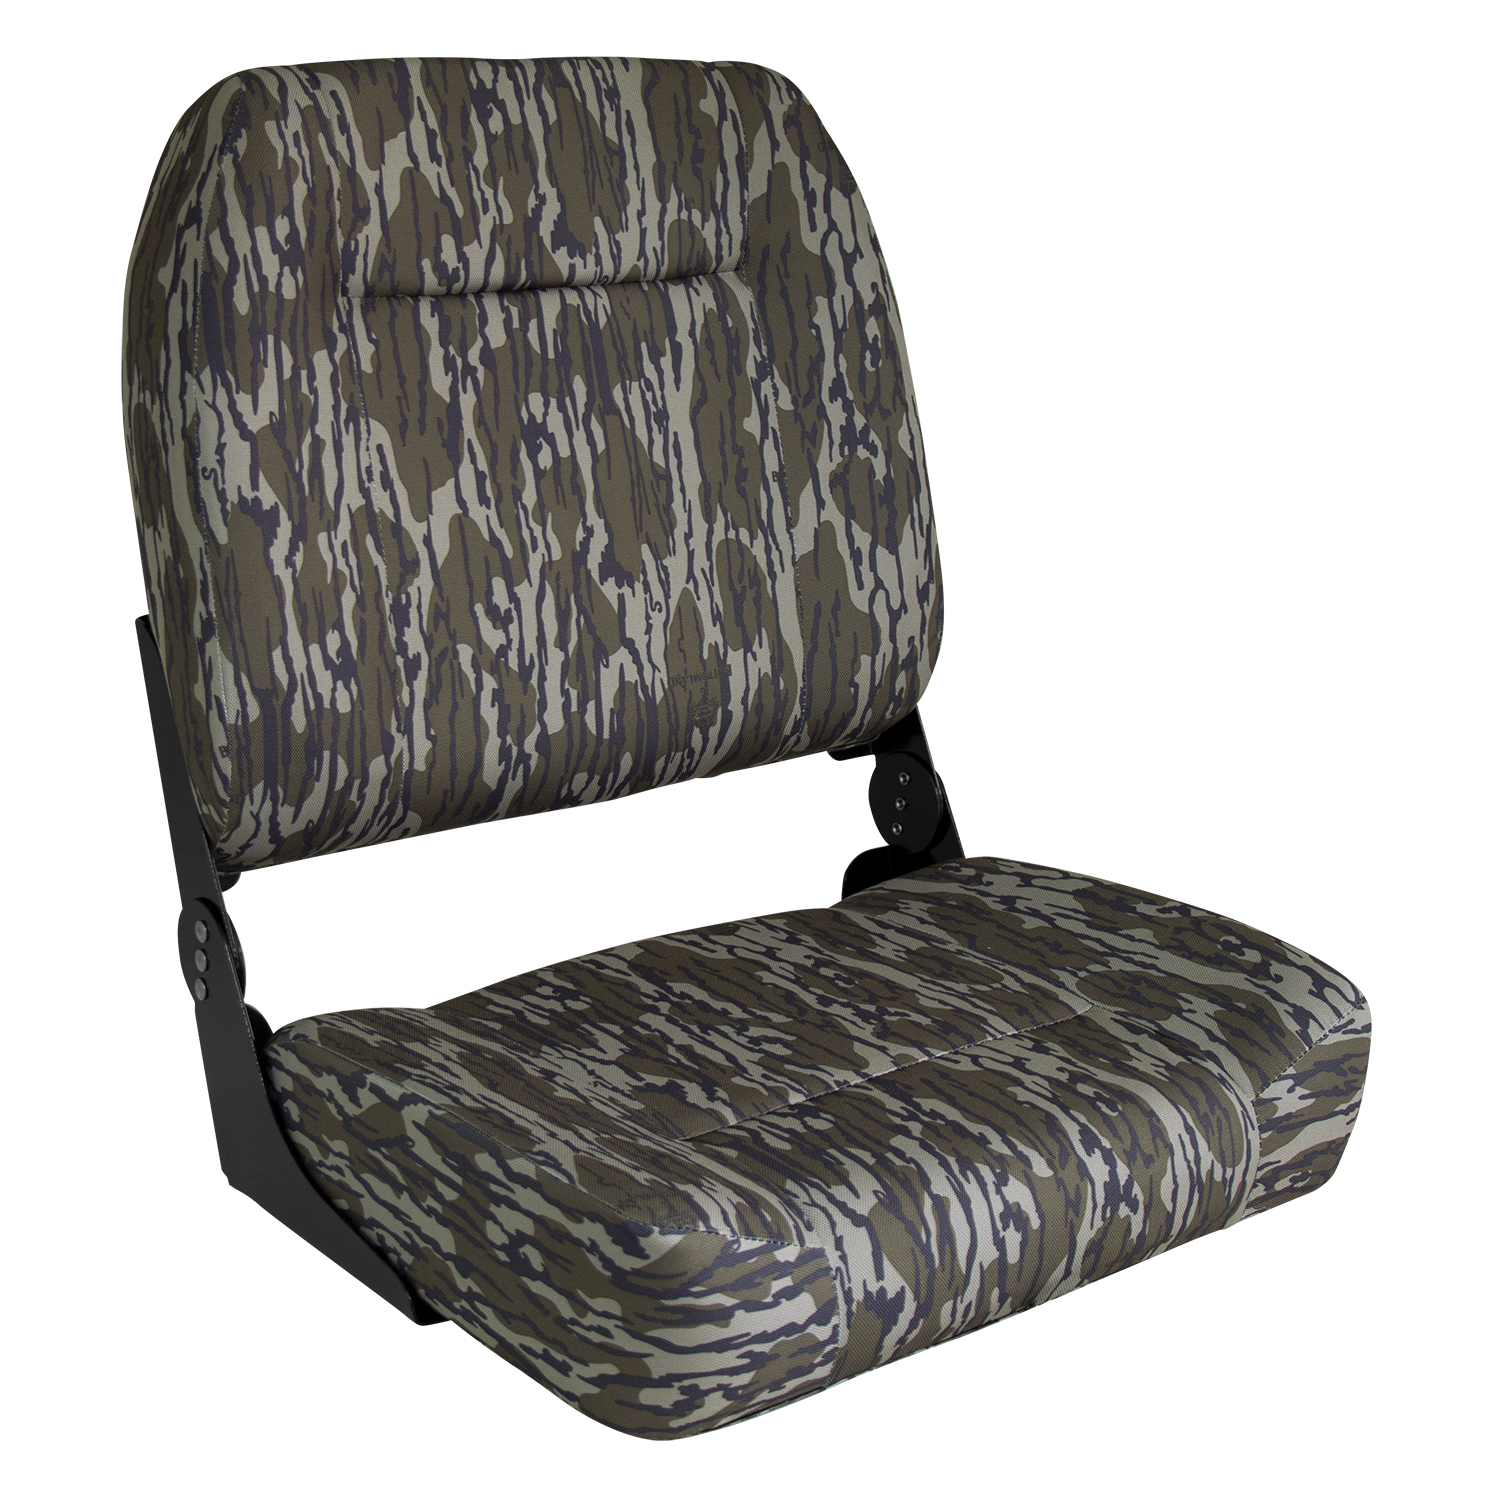 Low Back Boat Seat Camo Shadow grass Print Fishing Boating Comfort Tax Included